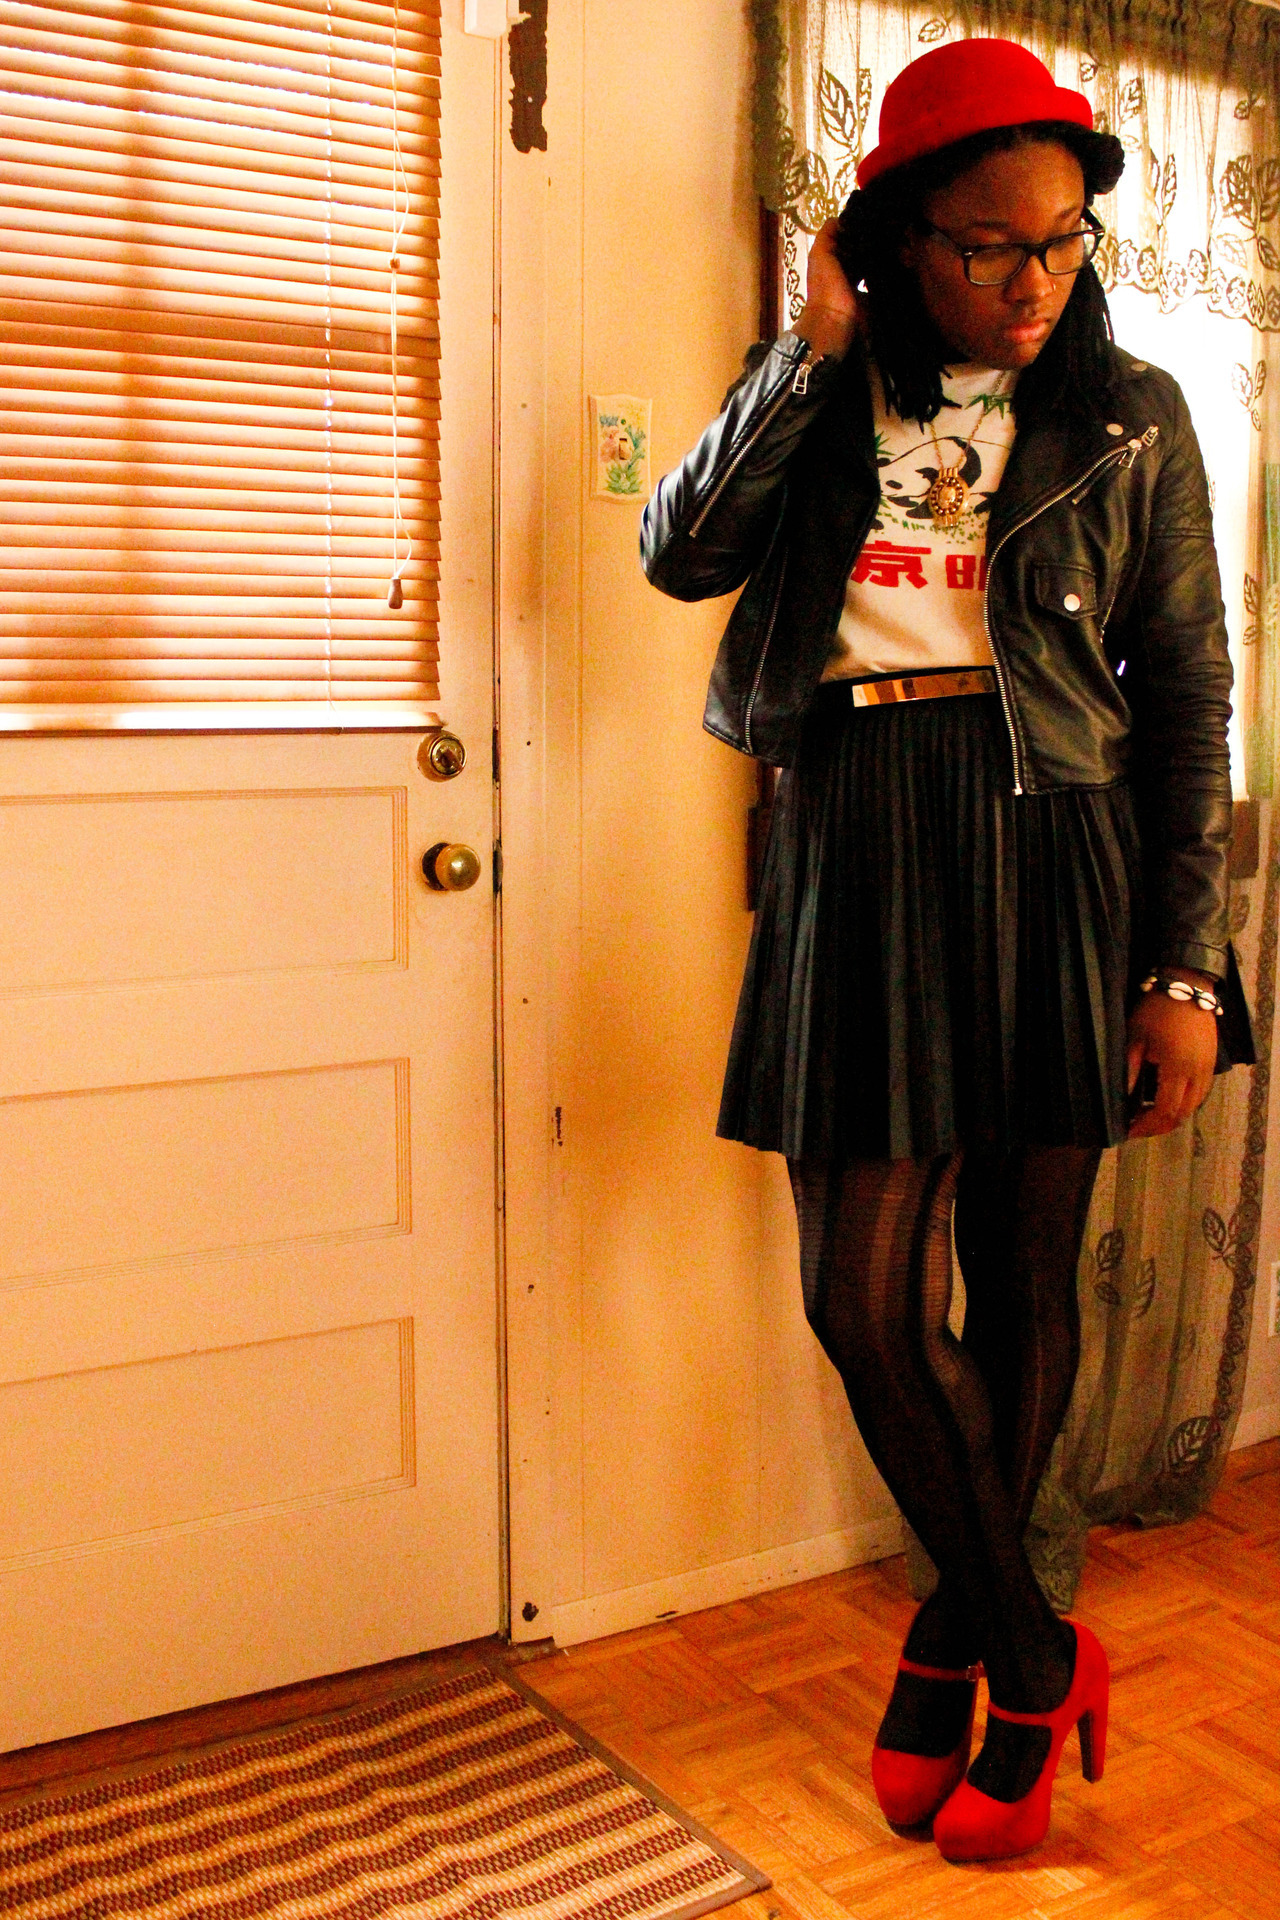 Glasses:UrbanOutfitters, Hat:online shop, Shirt:Thrift find, Skirt:Forever21, Tights:UrbanOutfitters, Shoes:Target, Jacket:NastyGal, Jewely:antique store & vendor Jasmine,24,St.Louisayaevolve.tumblr.com #Blackfashion On FacebookTwitter @BlackFashionbyj